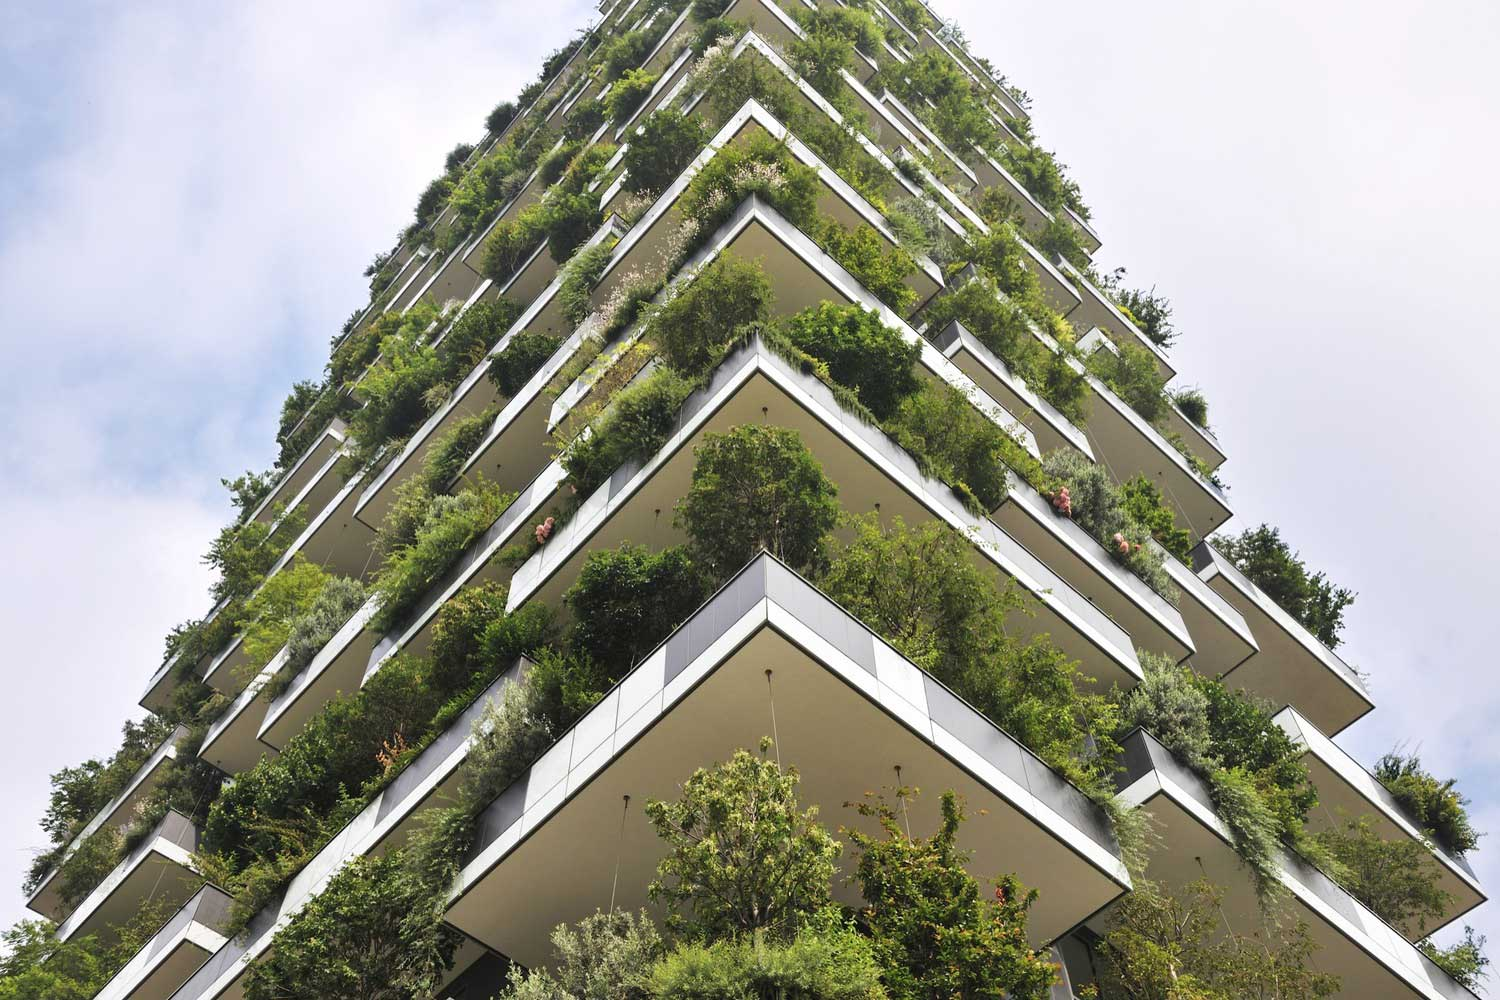 Bosco Verticale by Boeri Studio | Yellowtrace